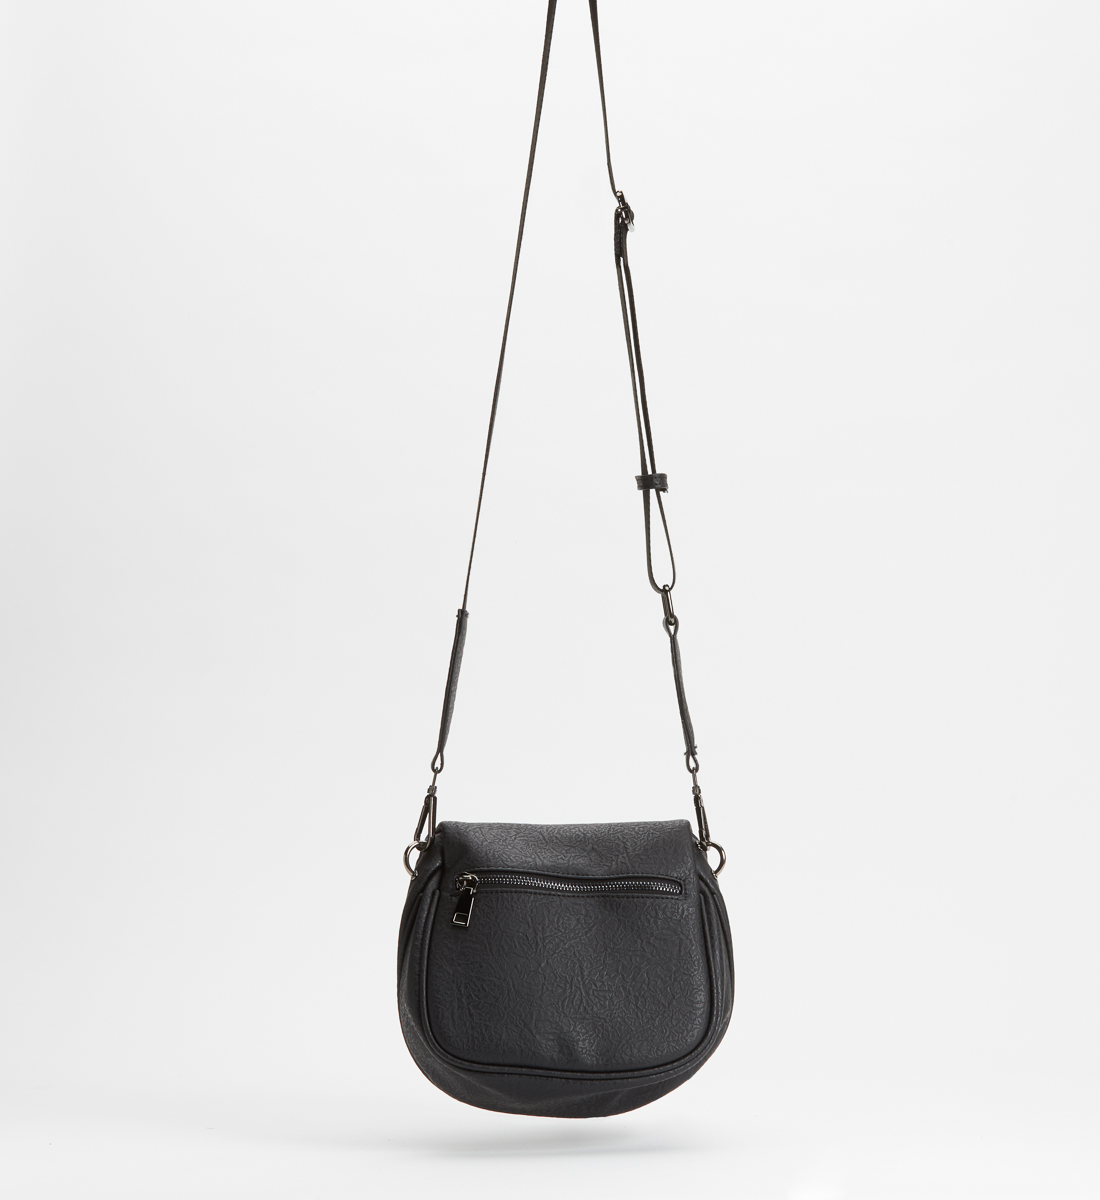 Zip Saddle Bag,Black Back